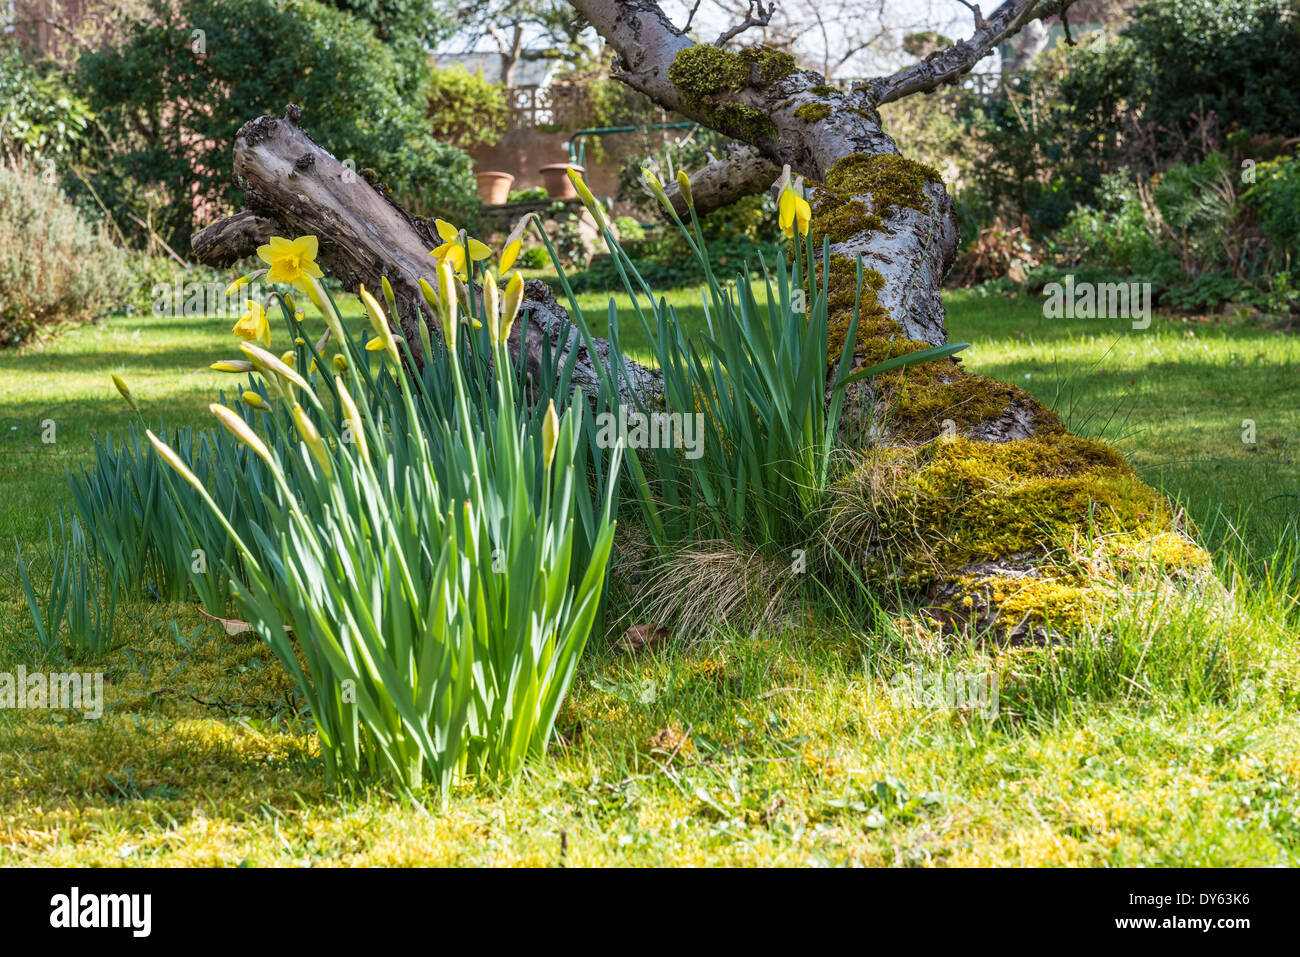 Daffodils growing in garden under old apple tree in spring. Sixth of sequence of 10 (ten) images photographed over five weeks. - Stock Image